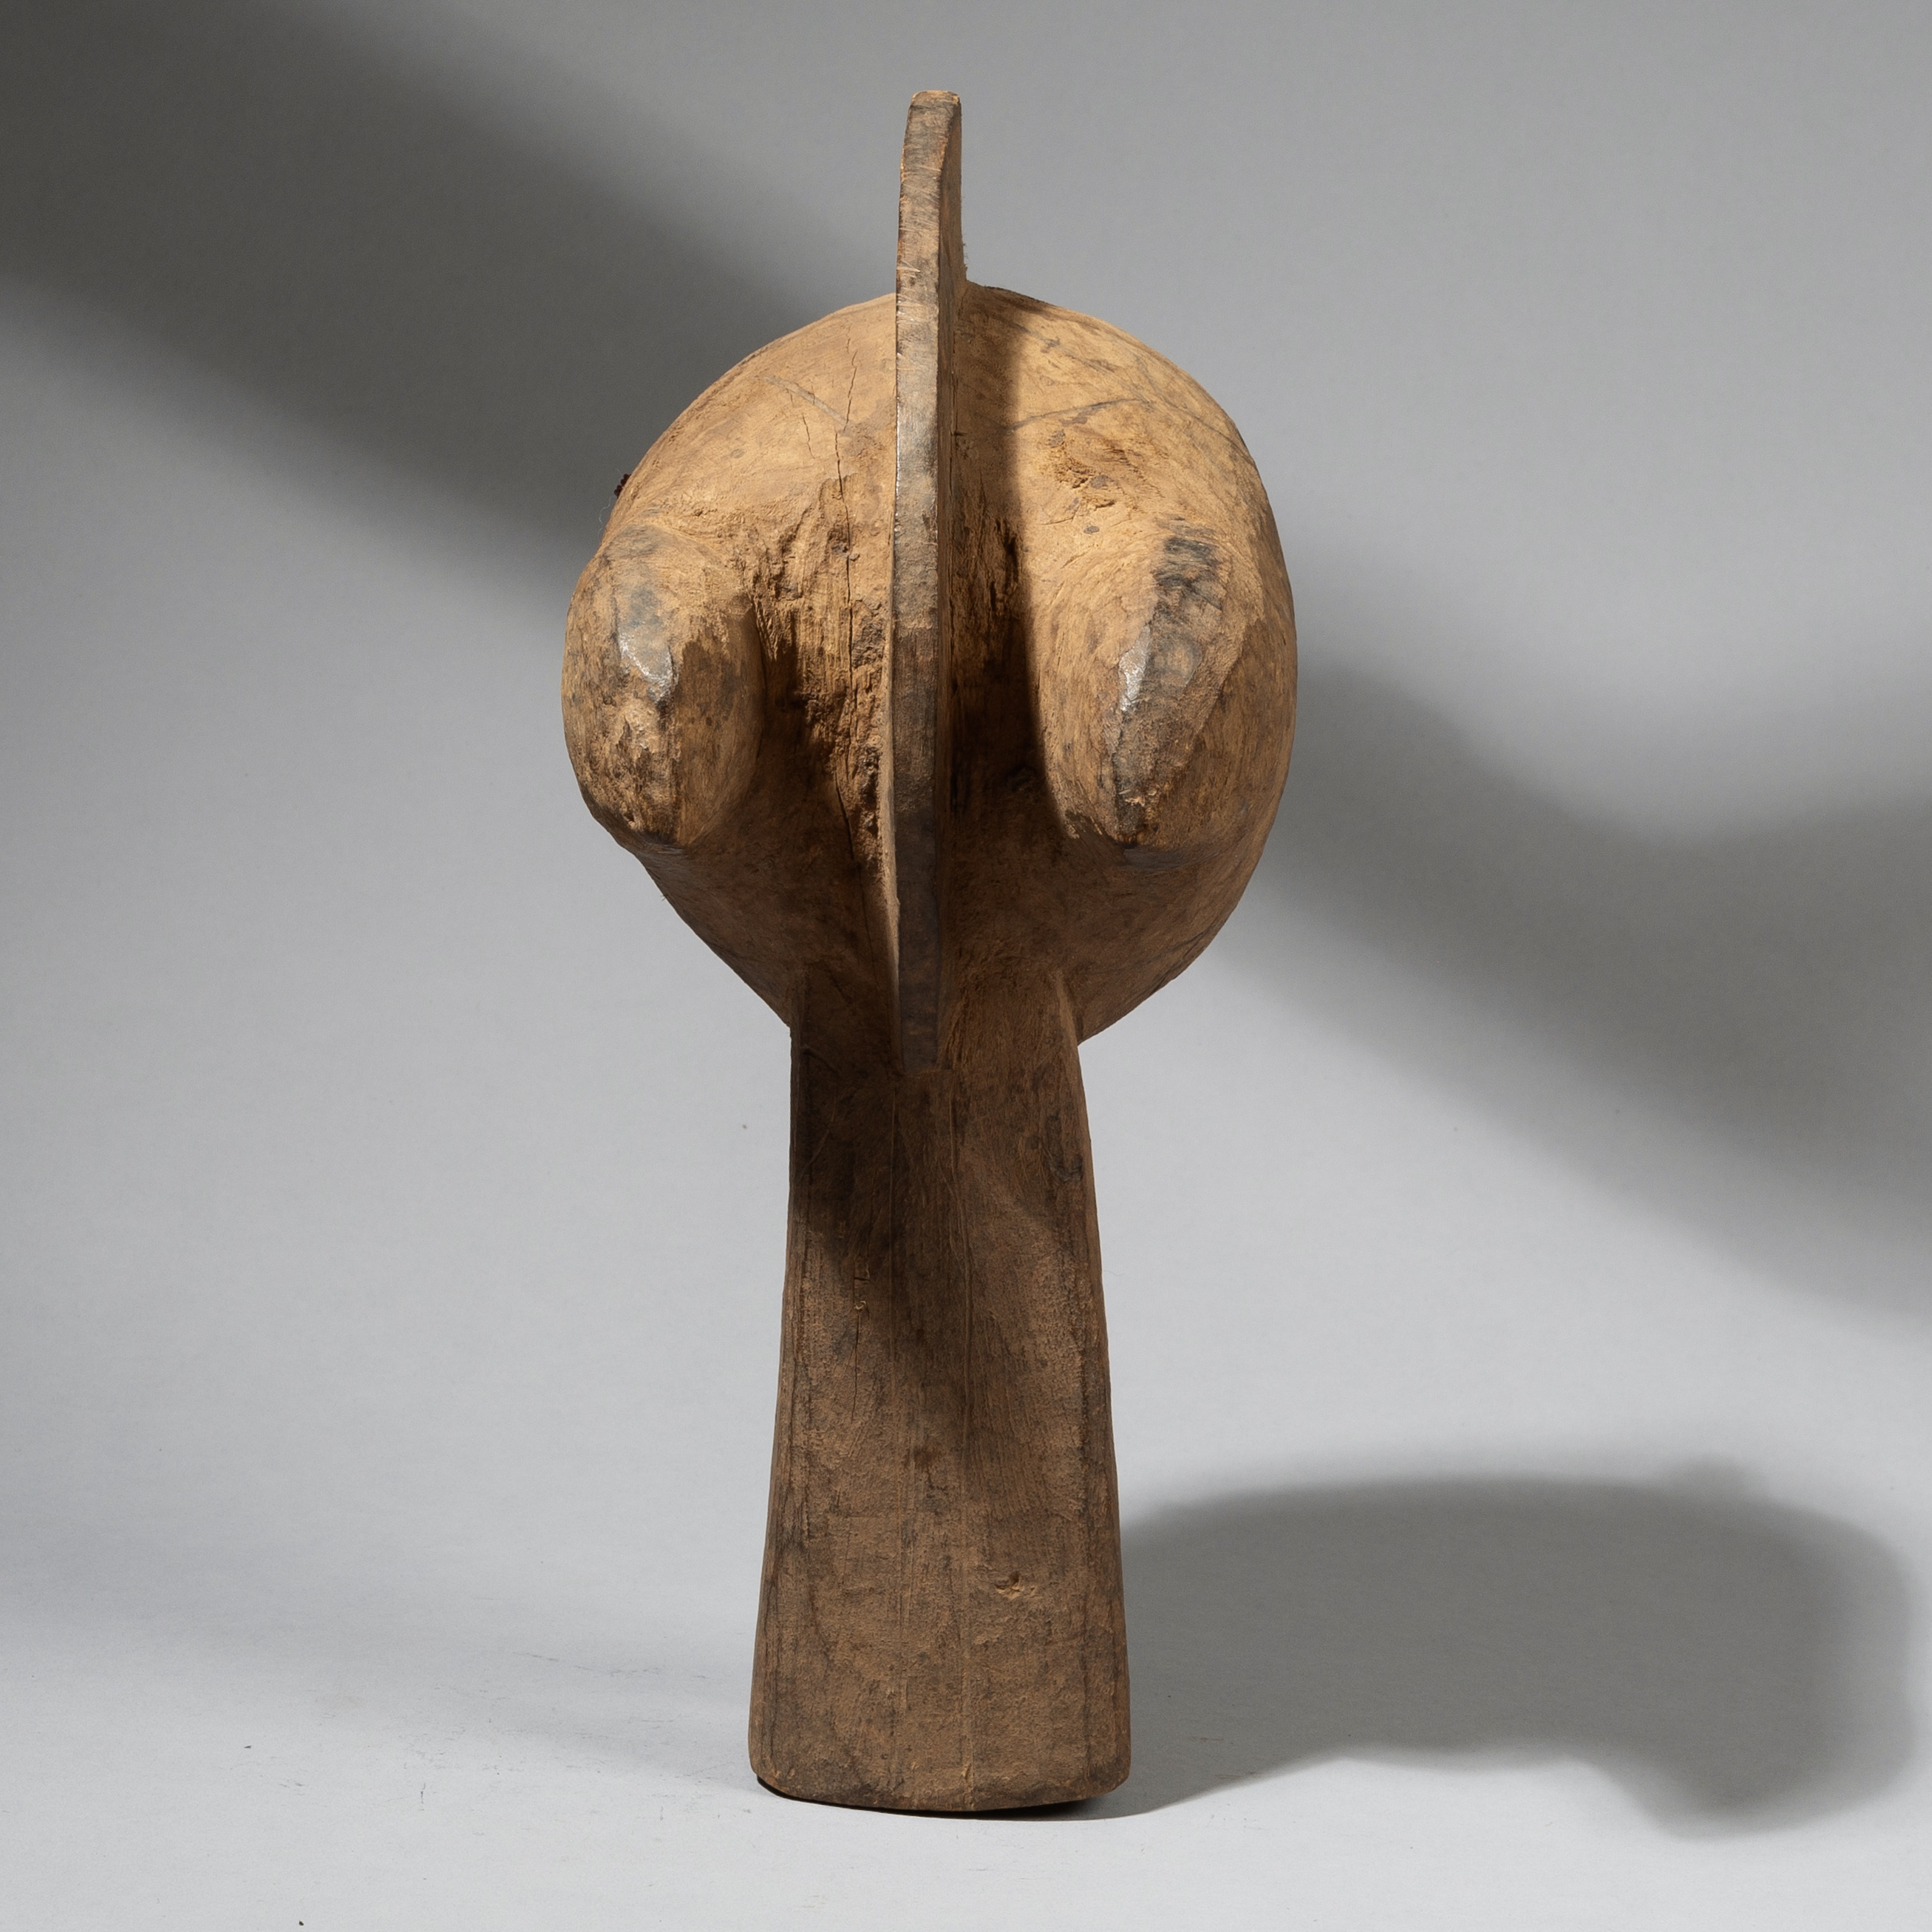 AN ABSTRACT ANIMAL MASK, MOSSI TRIBE OF BURKINA FASO W. AFRICA ( No 4447)